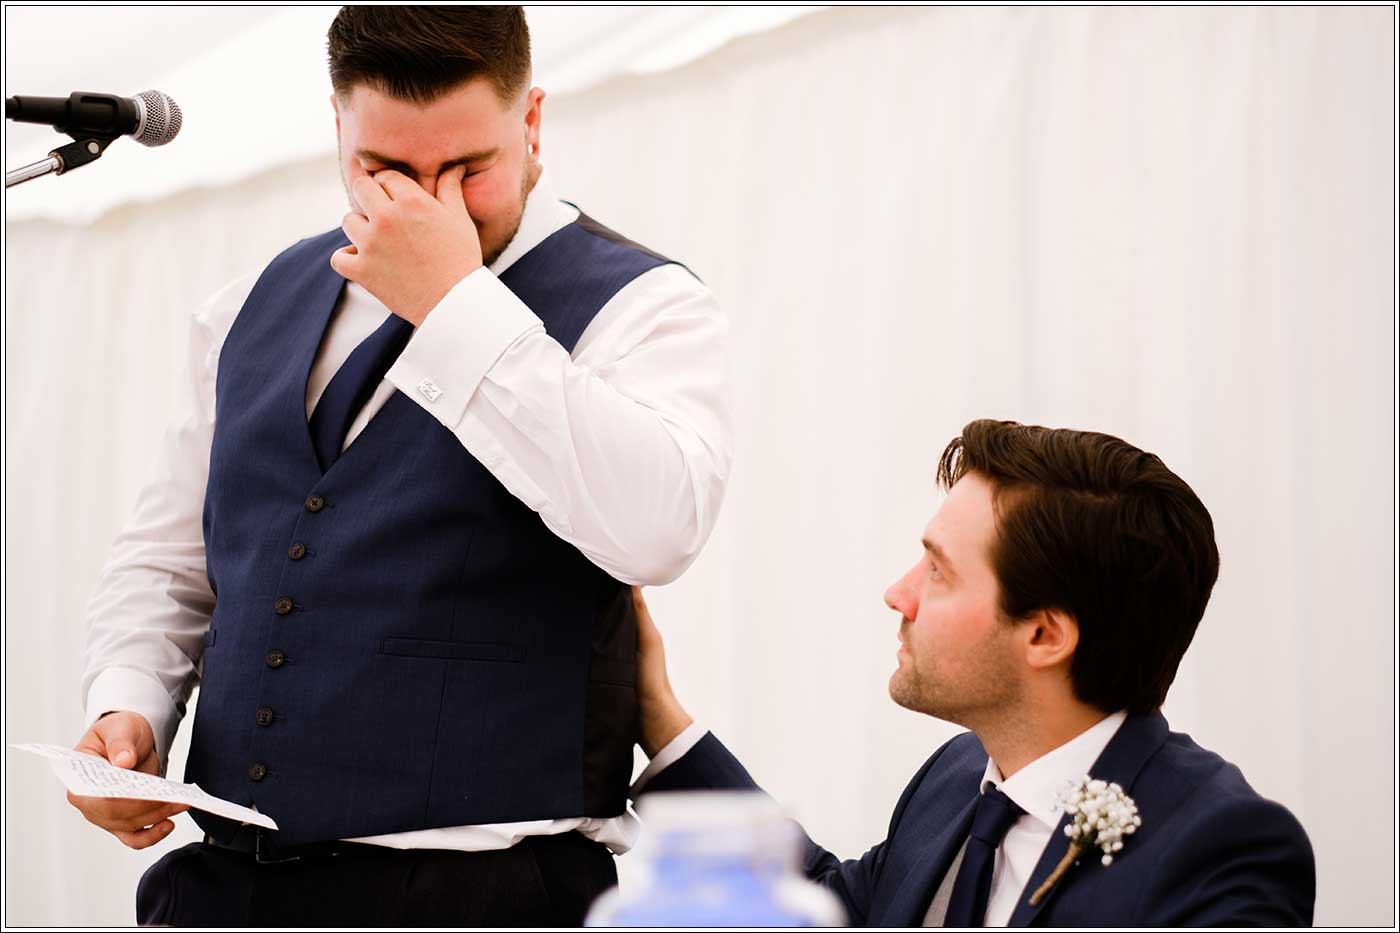 Tearful bestman during his speech